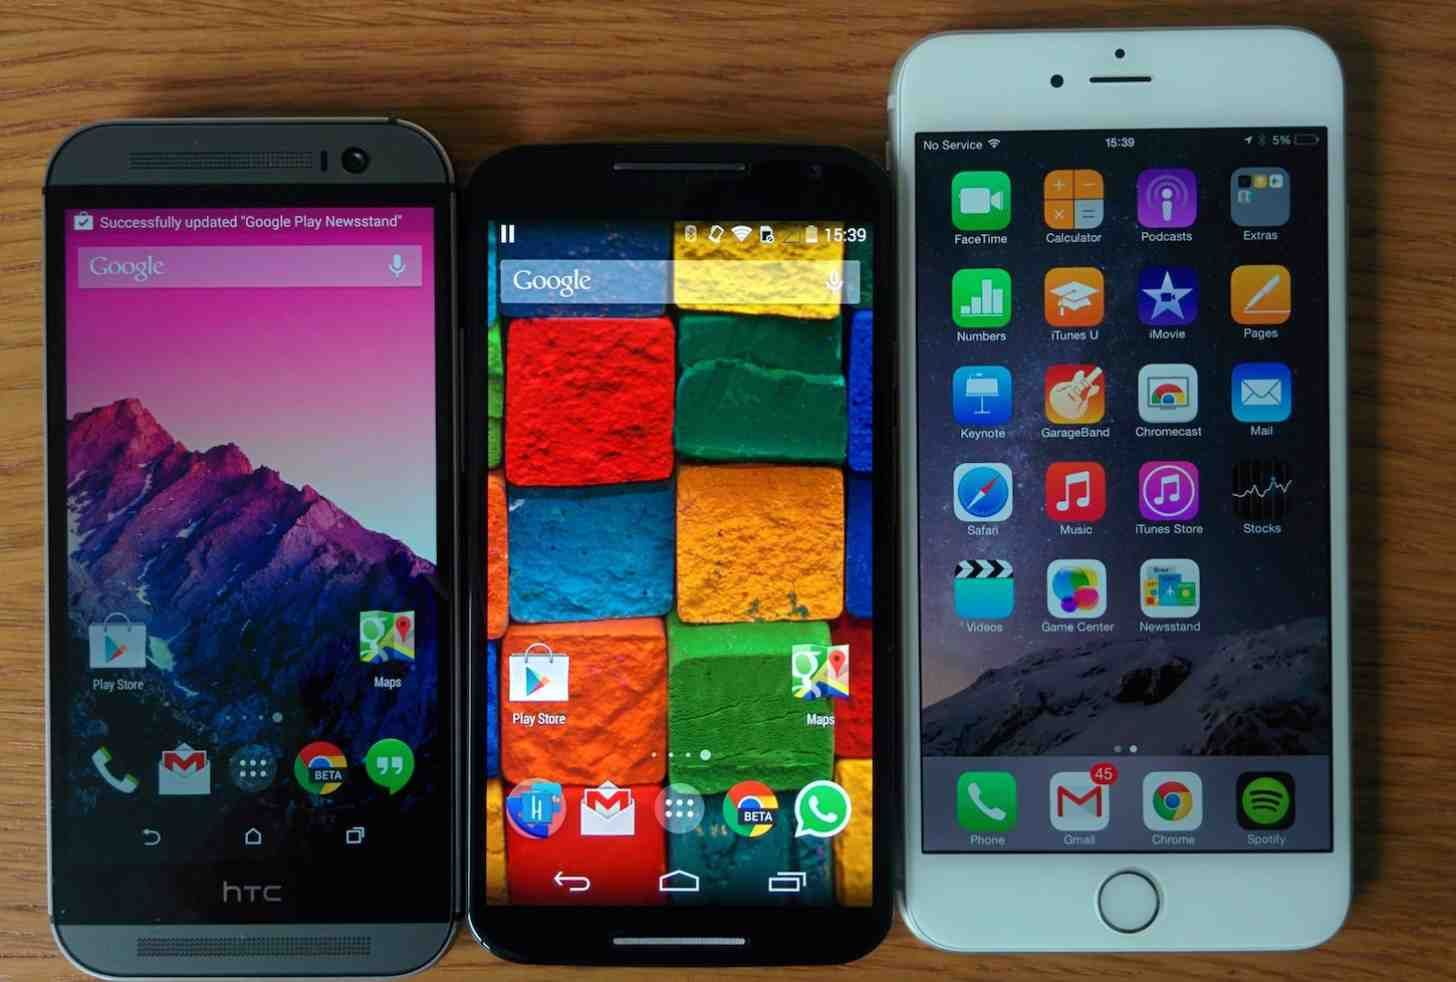 How Many Smartphones Did You Buy In 2014 Smartphone Iphone Glitch Iphone Deals